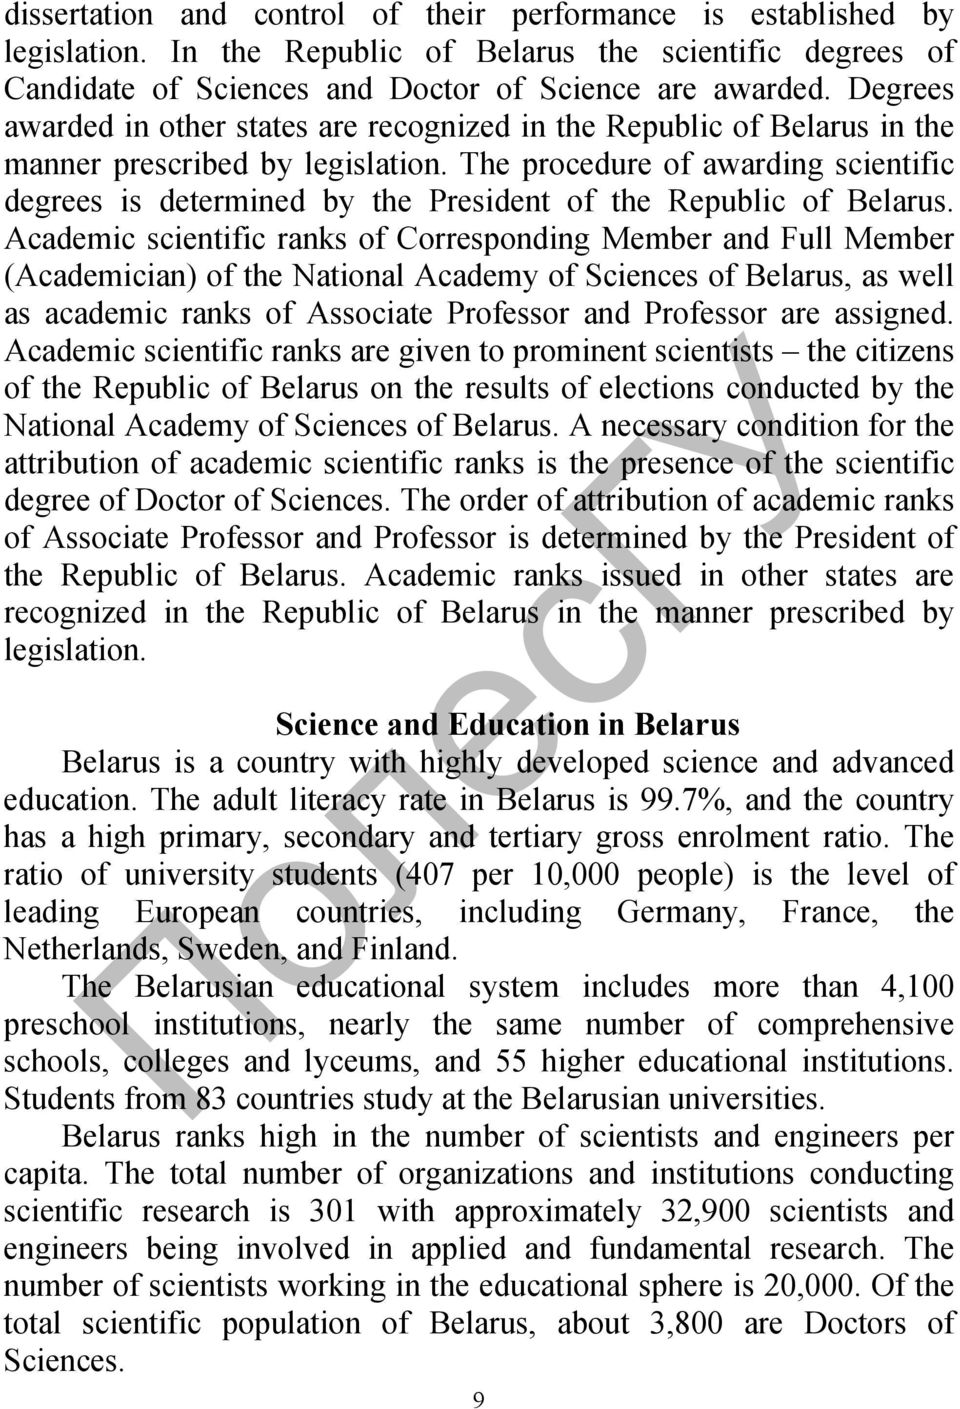 The procedure of awarding scientific degrees is determined by the President of the Republic of Belarus.